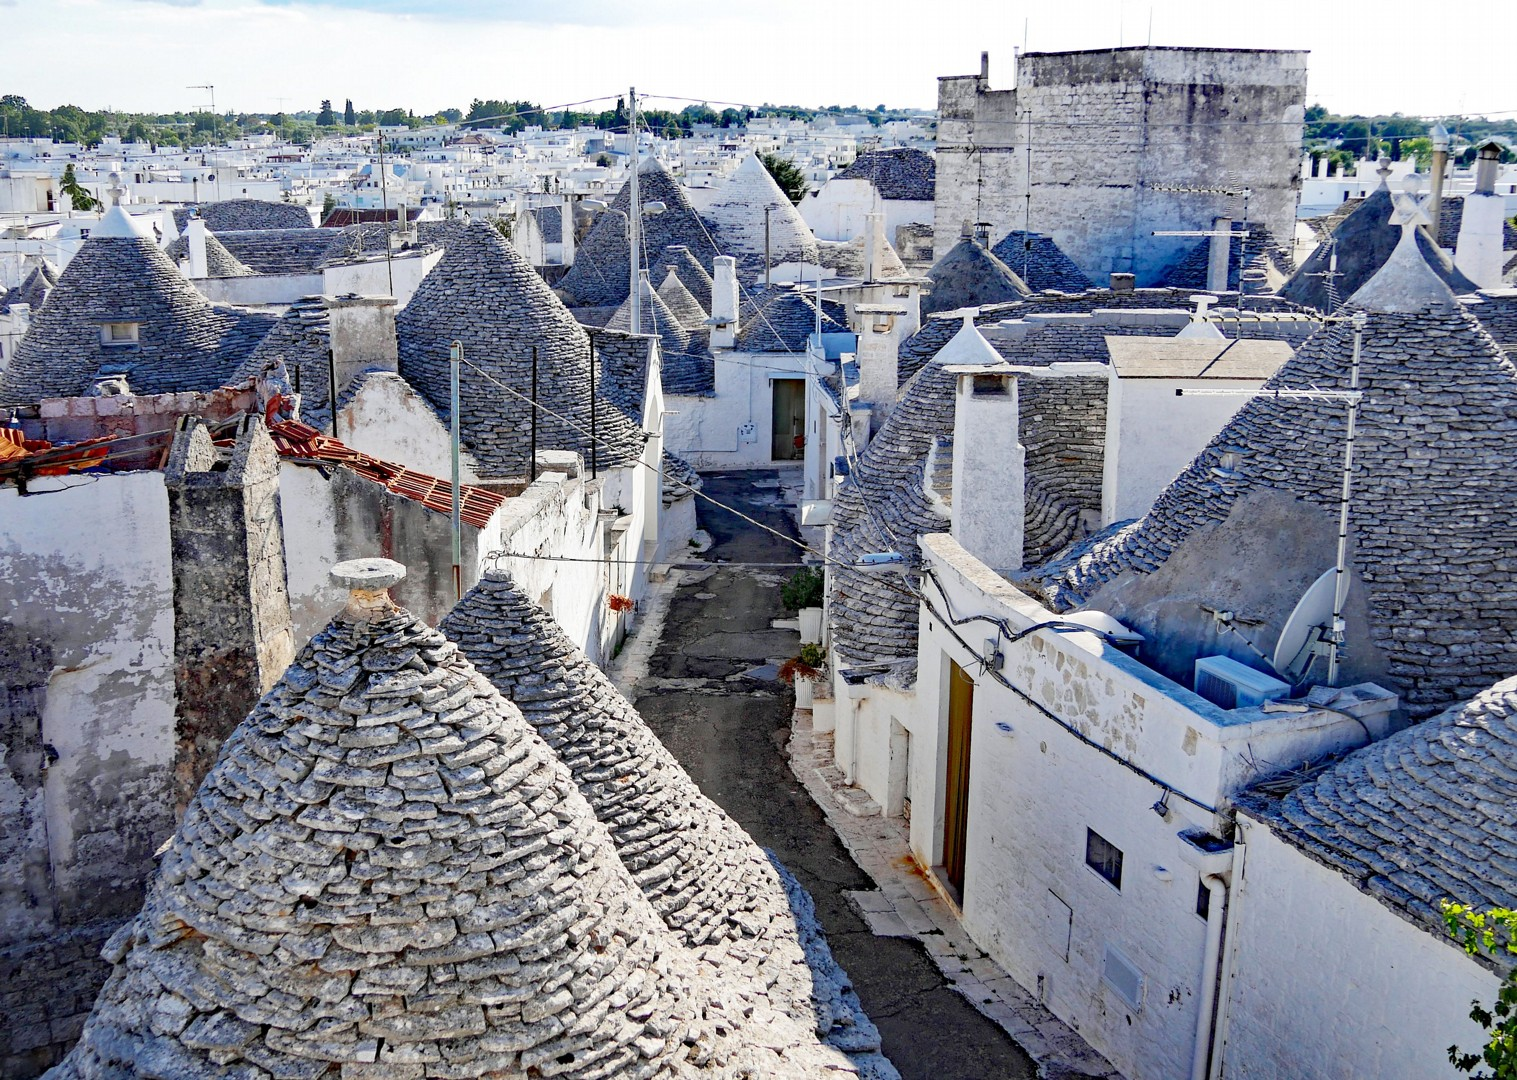 alberobello-rooftops-cycling-holiday-italy.jpg - Italy - Grand Traverse - North to South (17 days) - Guided Road Cycling Holiday - Road Cycling